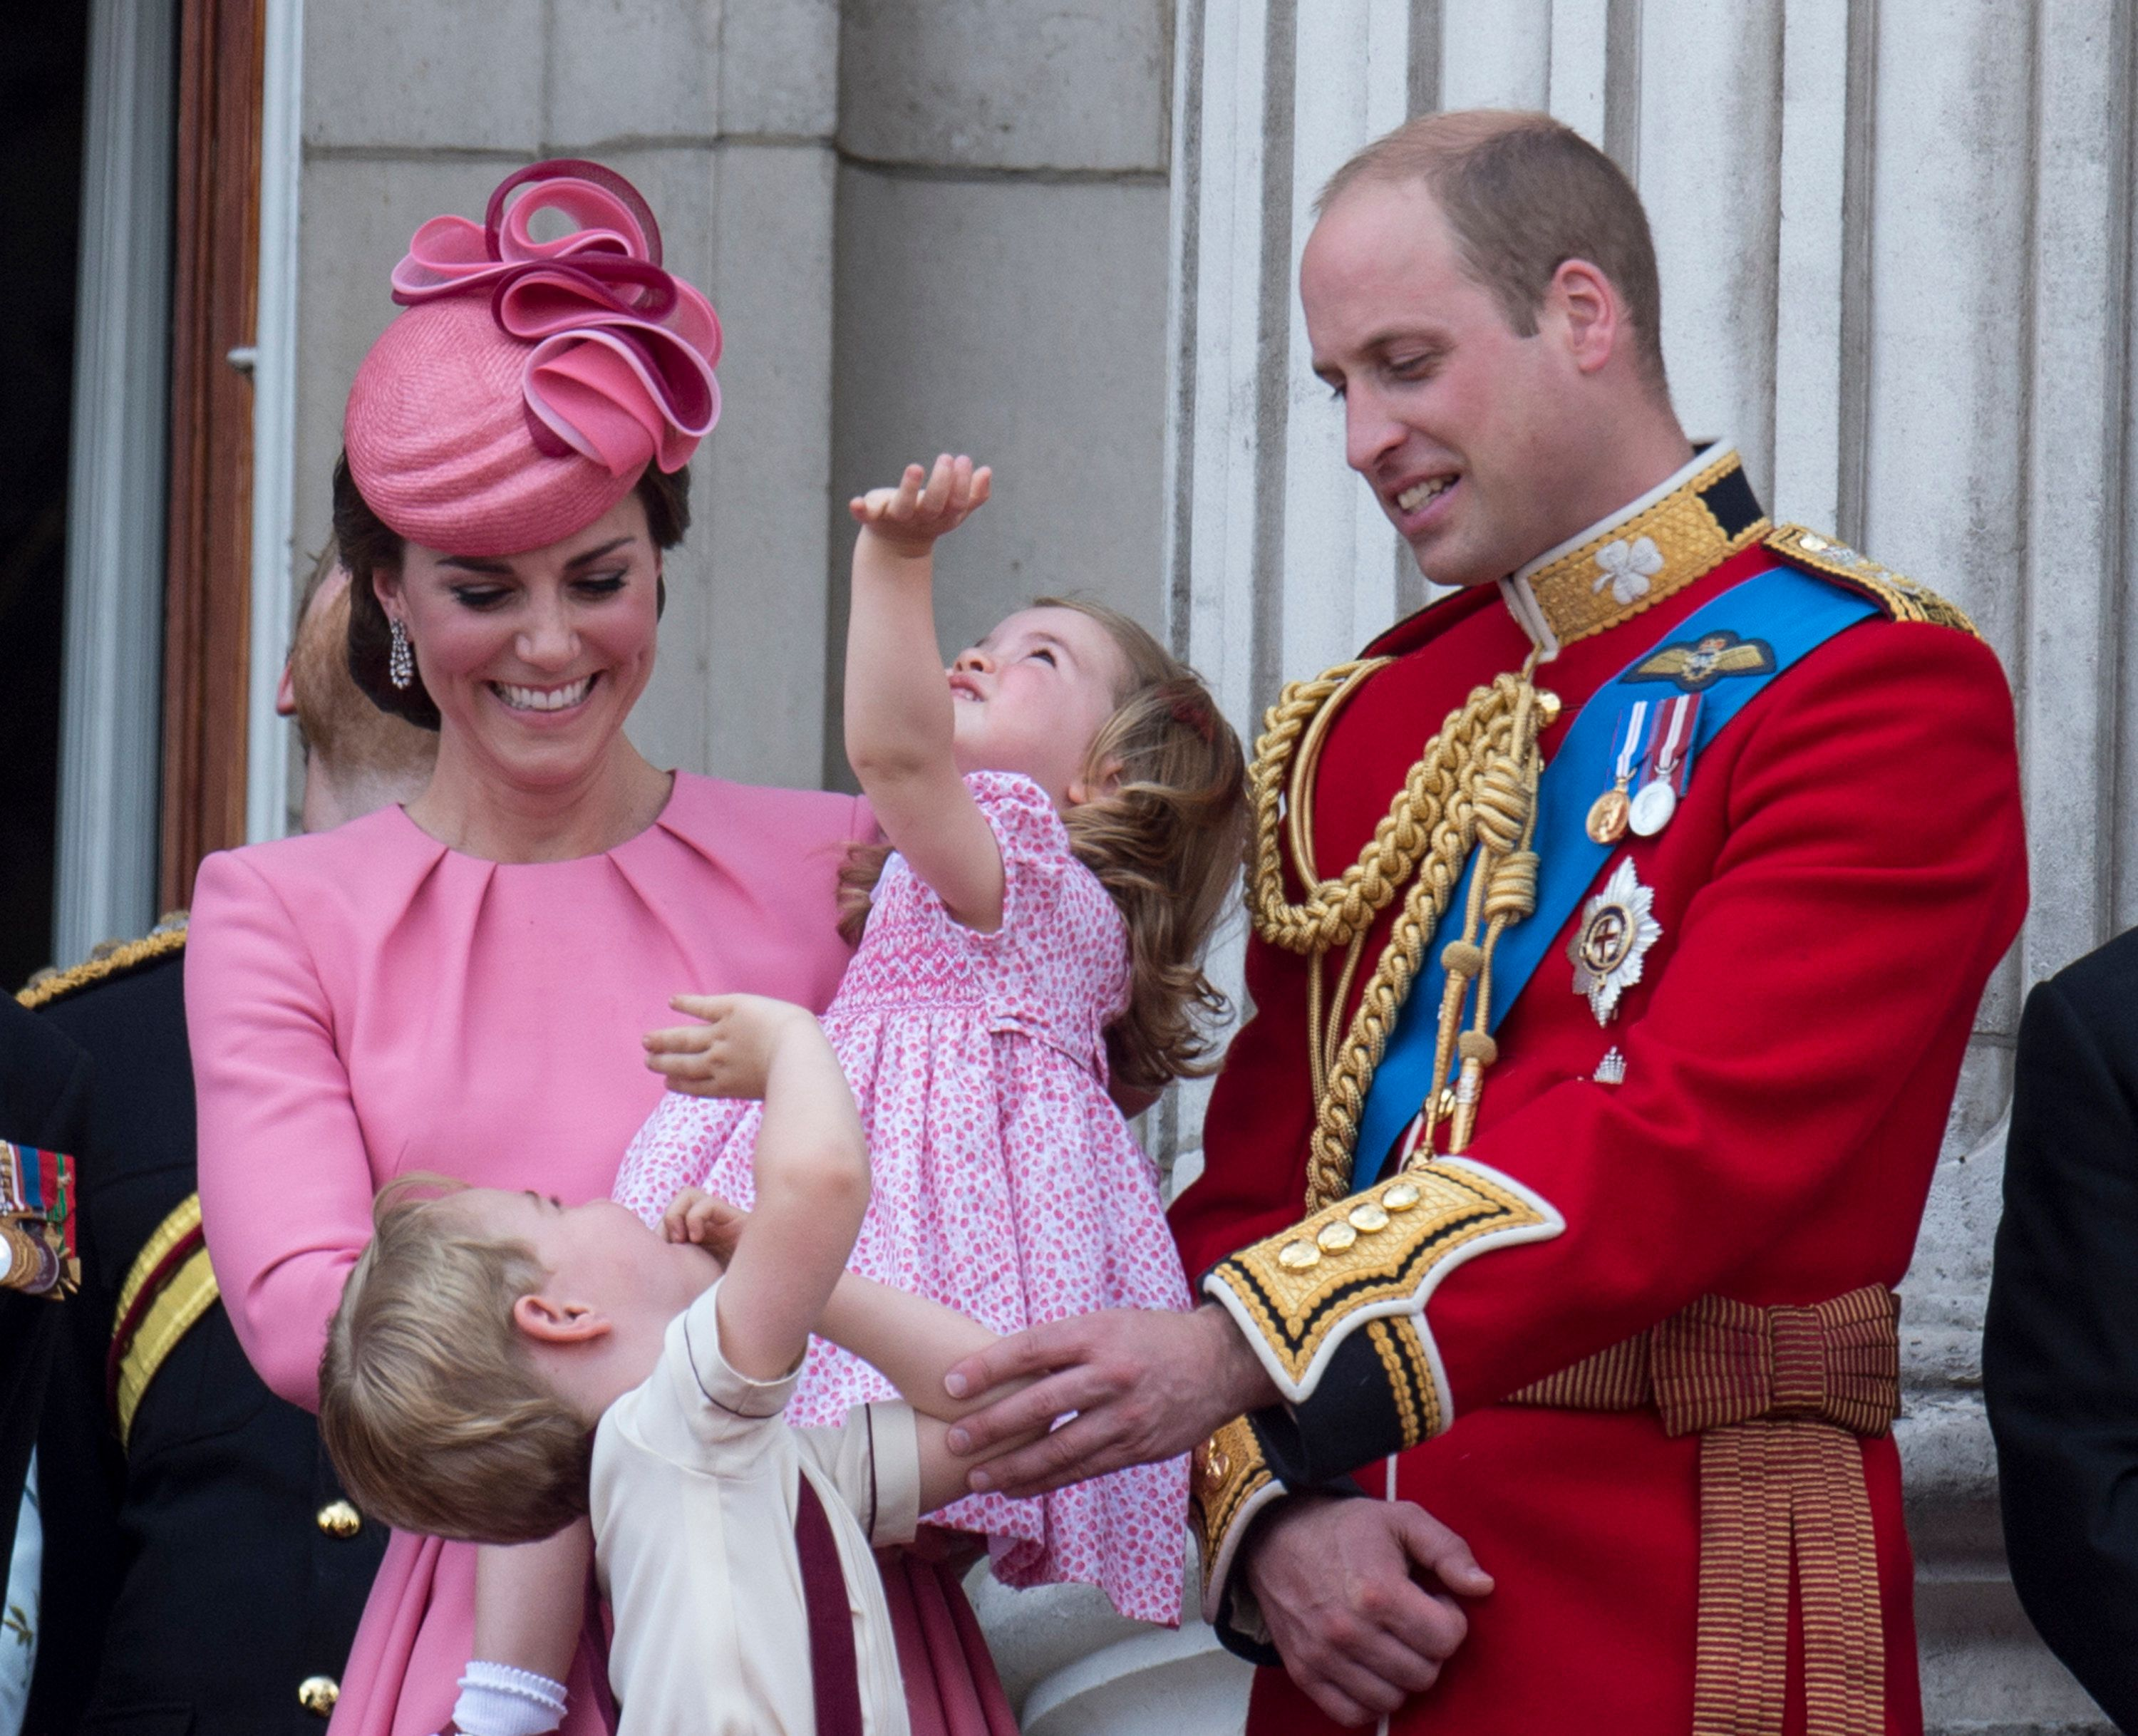 LONDON, ENGLAND - JUNE 17:  Prince William, Duke of Cambridge and Catherine, Duchess of Cambridge with Prince George of Cambridge and Princess Charlotte of Cambridge on the balcony at Buckingham Palace during the annual Trooping The Colour parade on June 17, 2017 in London, England.  (Photo by Mark Cuthbert/UK Press via Getty Images)